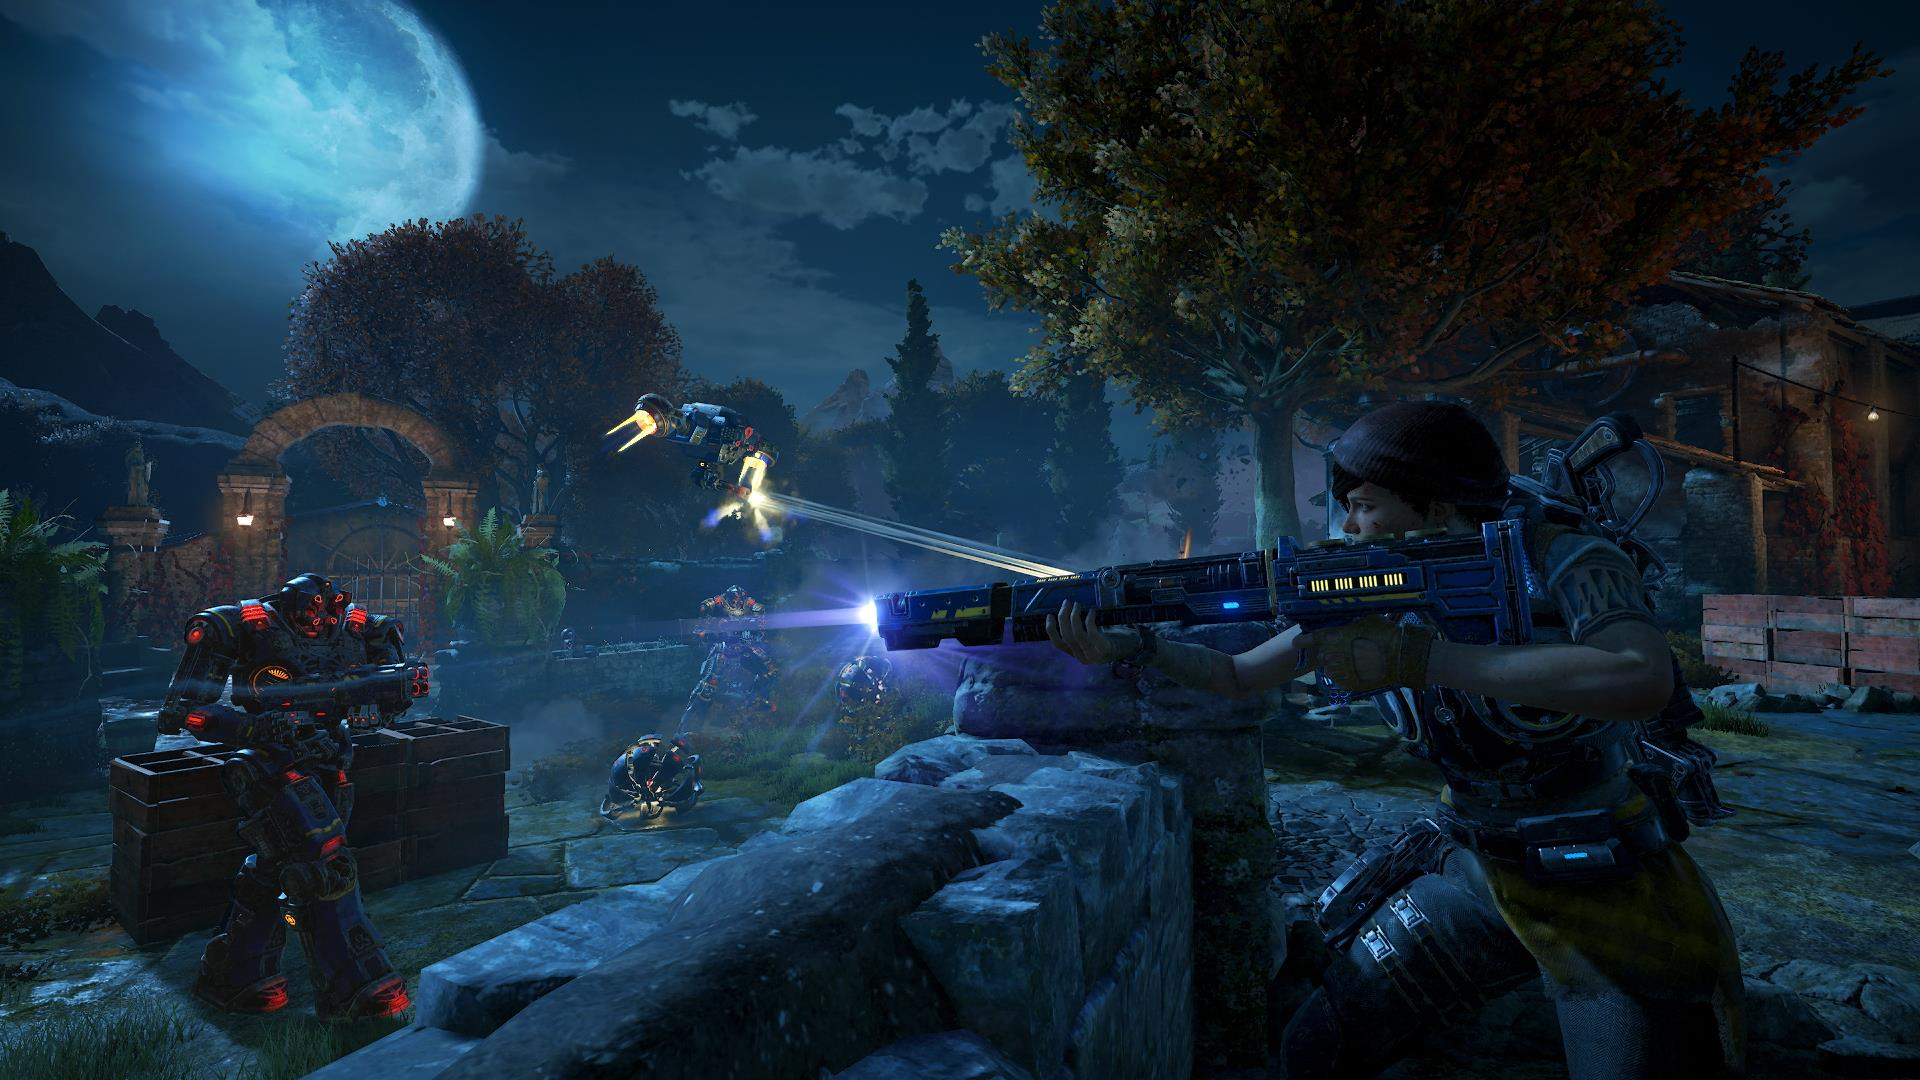 gears-of-war-4-screenshot-44